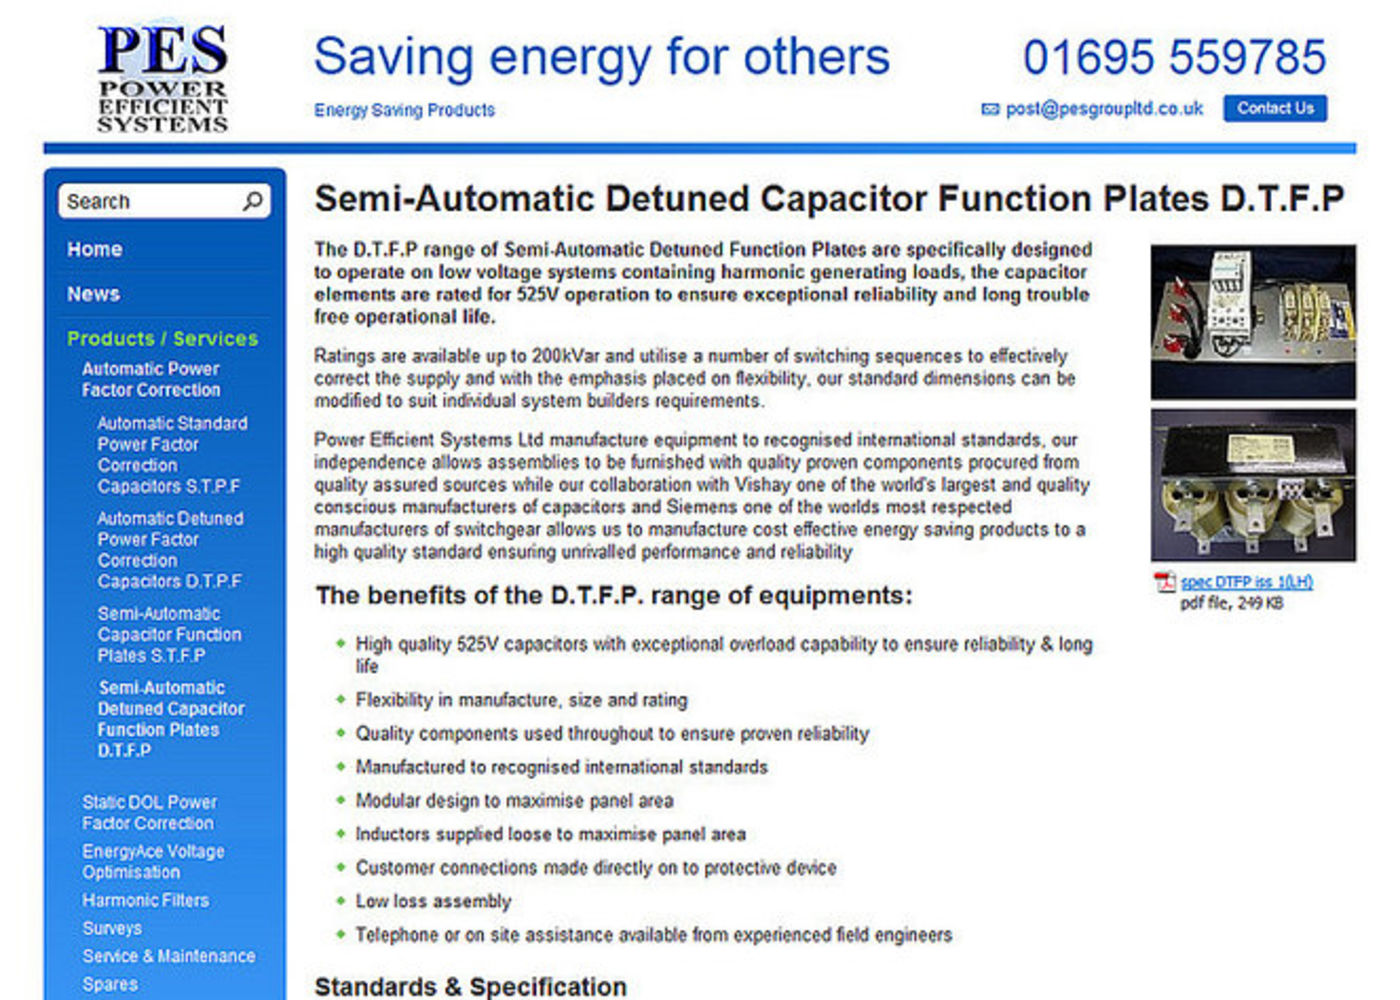 Power Efficient Systems Regular page